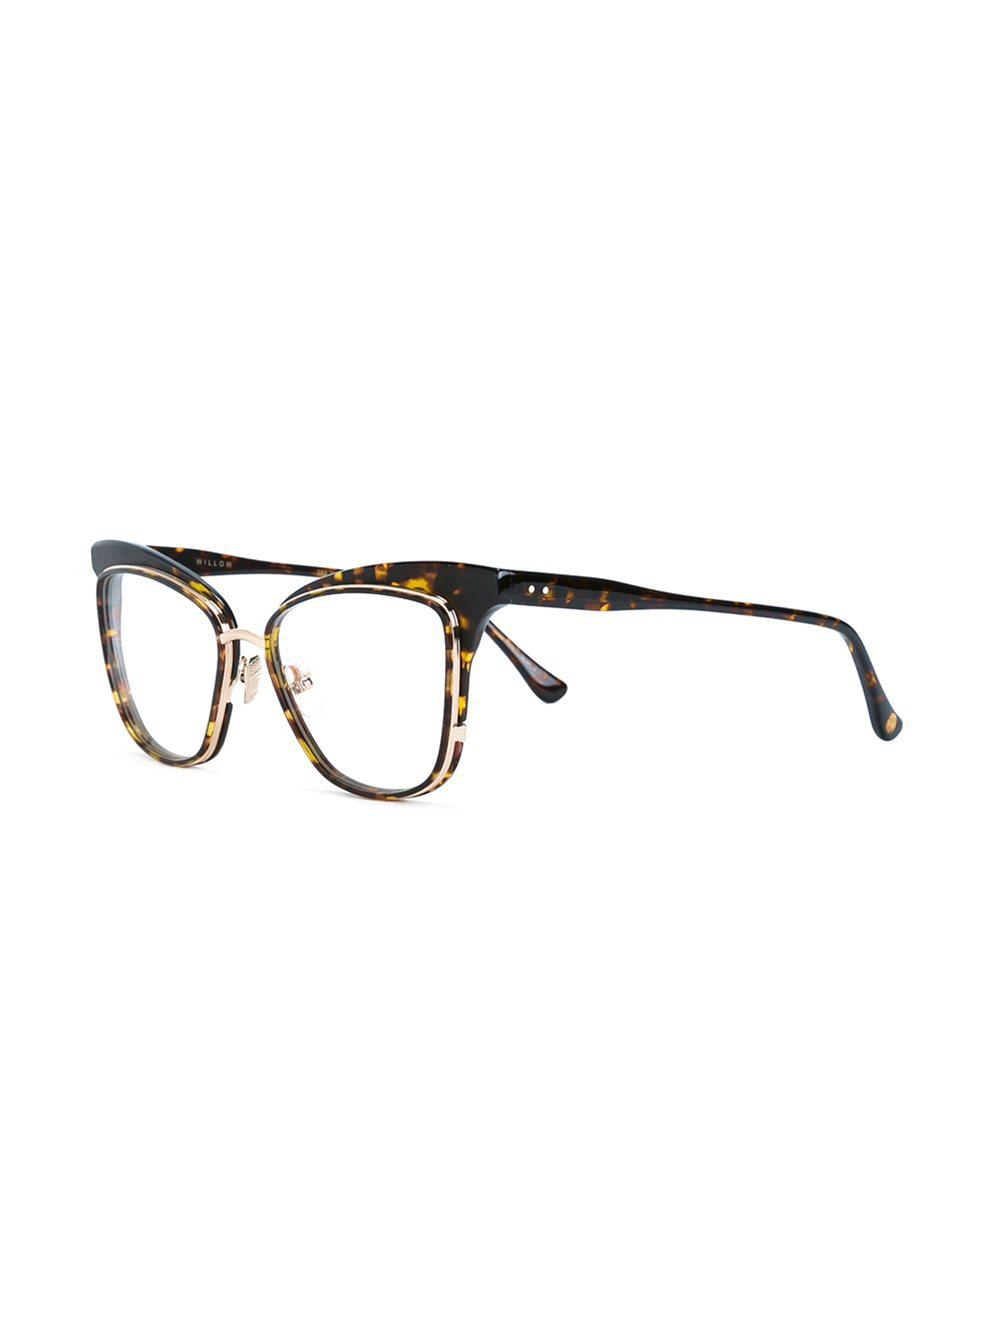 174b6e3bbe0 Lyst - Dita Eyewear  willow  Glasses in Brown